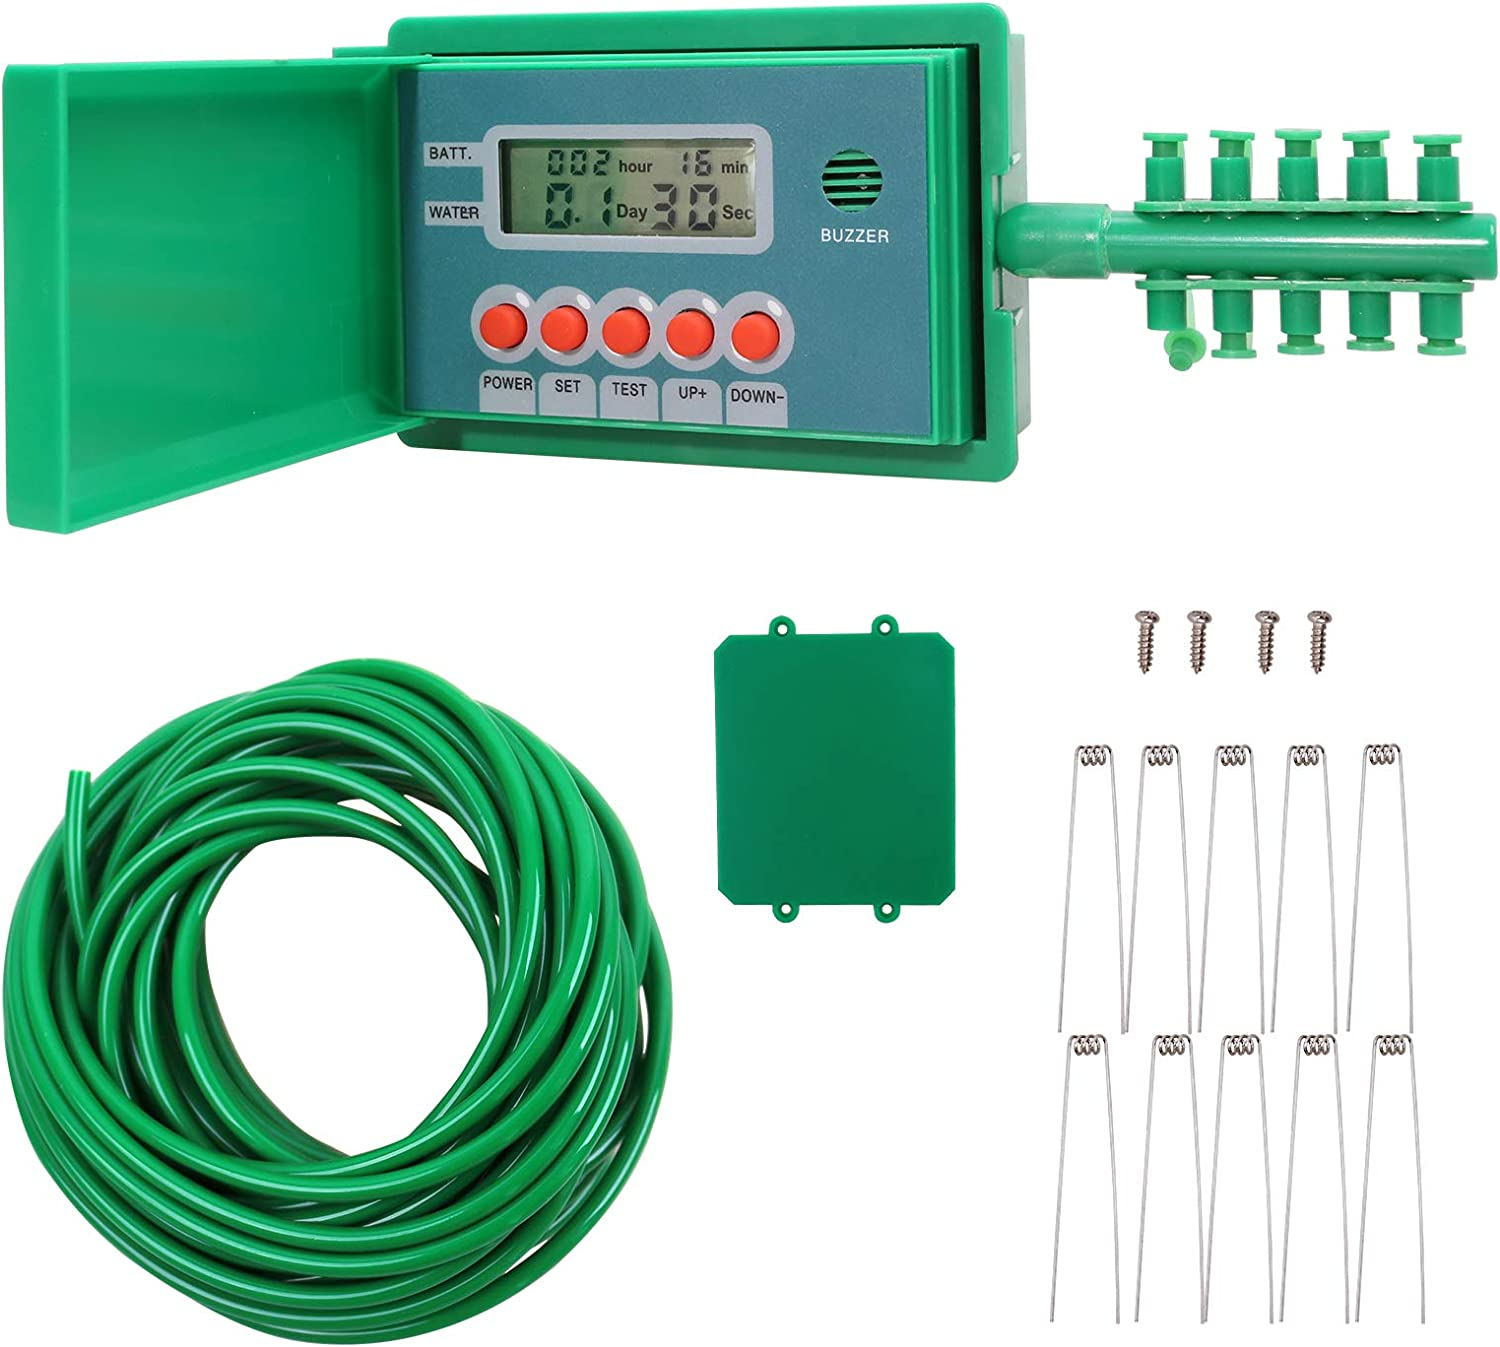 Inshow 55% New item OFF Automatic Drip Irrigation Watering Micro Digit Kits Plant